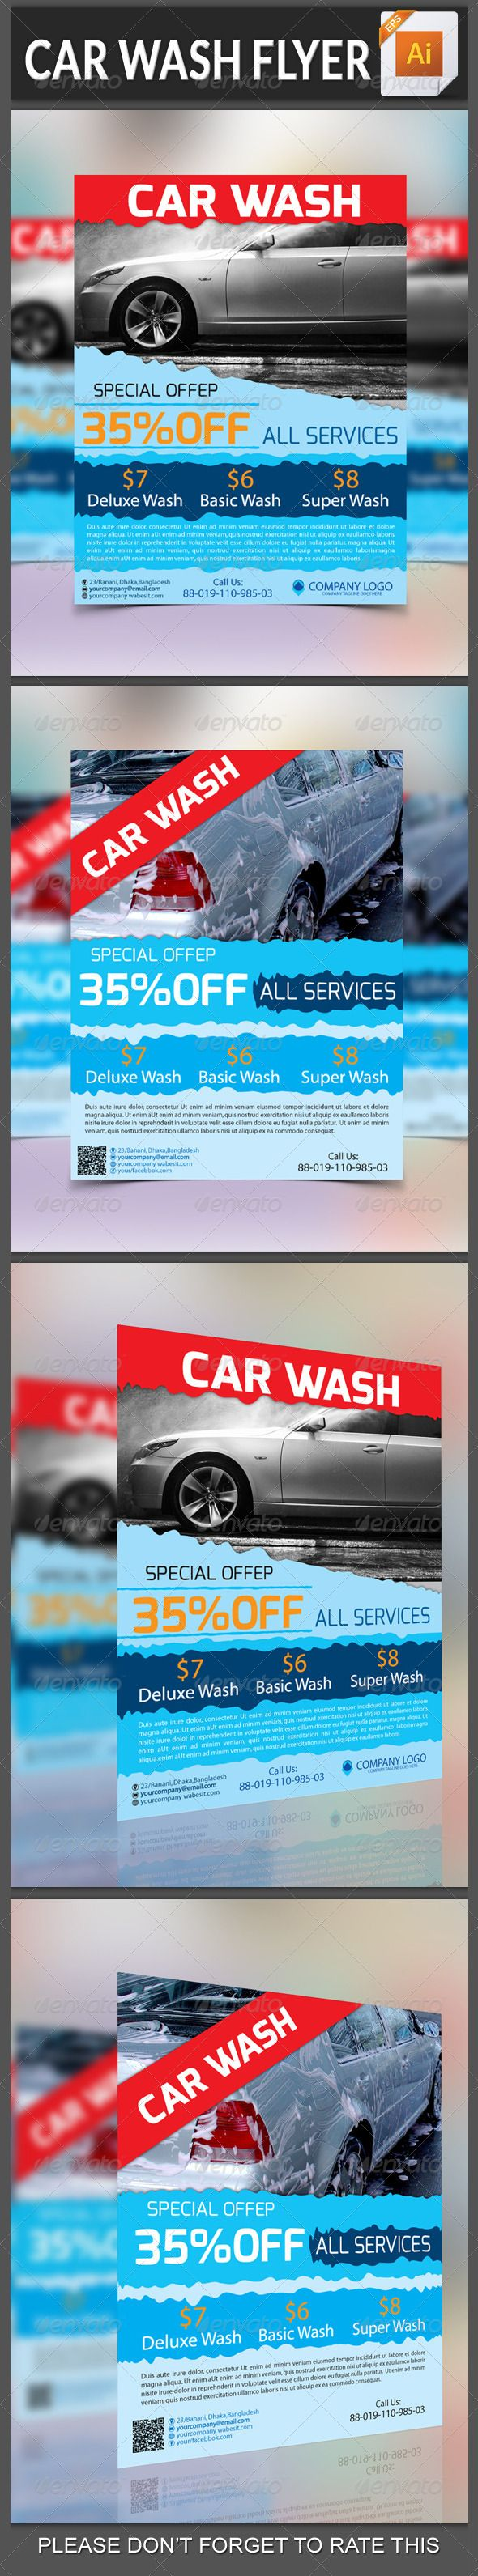 Buy car wash flyer by mamunhasan on graphicriver